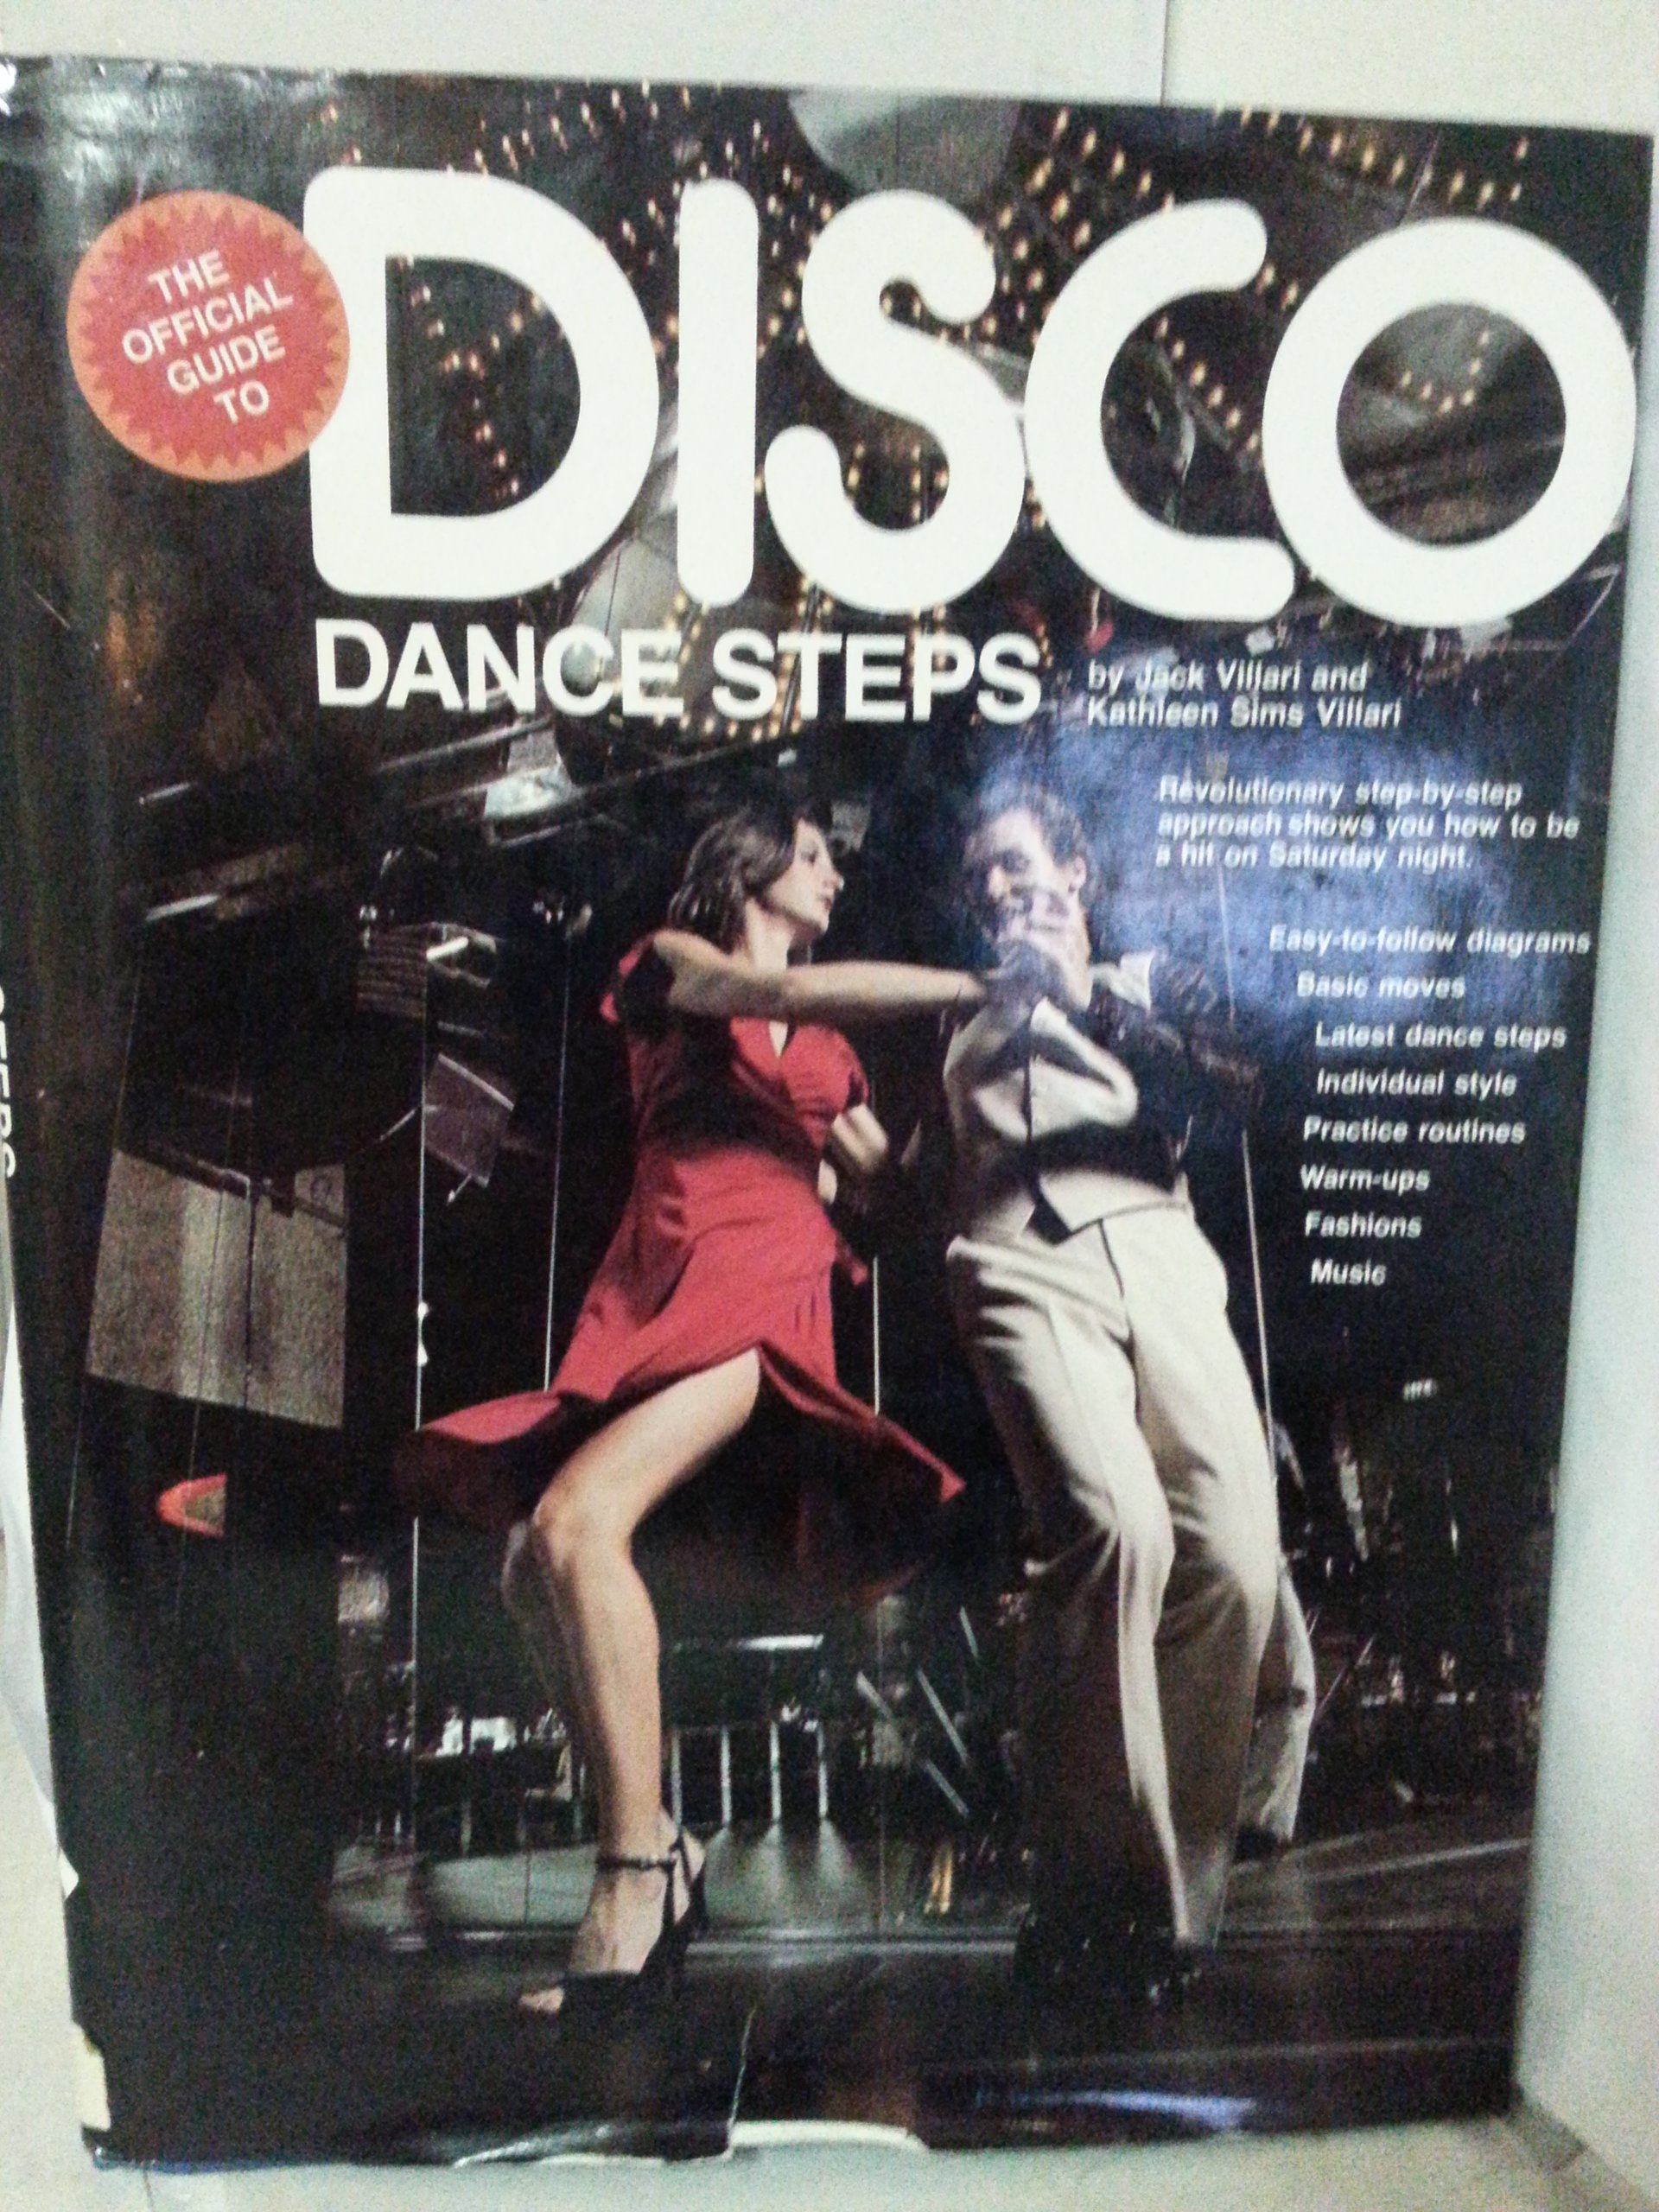 Hustle Dance Steps Diagram Diagrams As Well Step Official Guide To Disco Jack Villari Kathleen Books 1920x2560